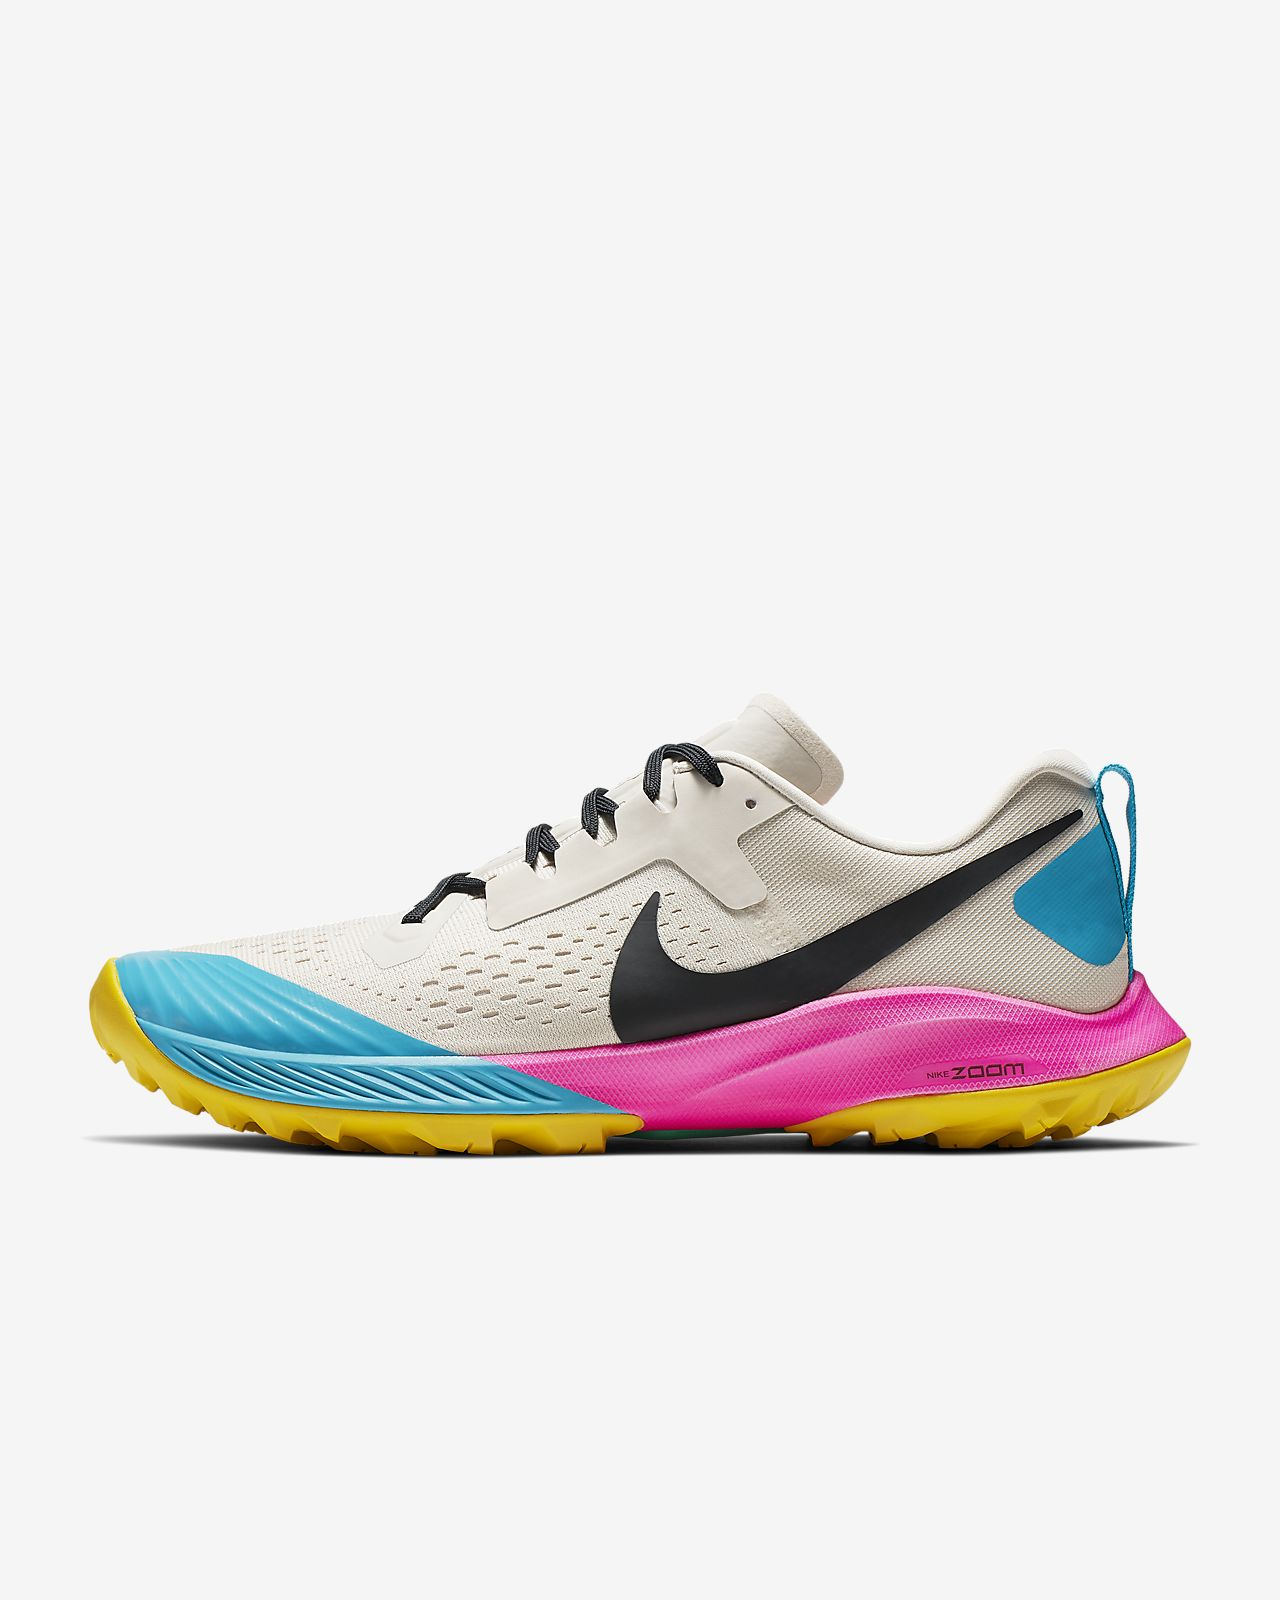 new product 1f021 5af5a ... Chaussure de running Nike Air Zoom Terra Kiger 5 pour Homme